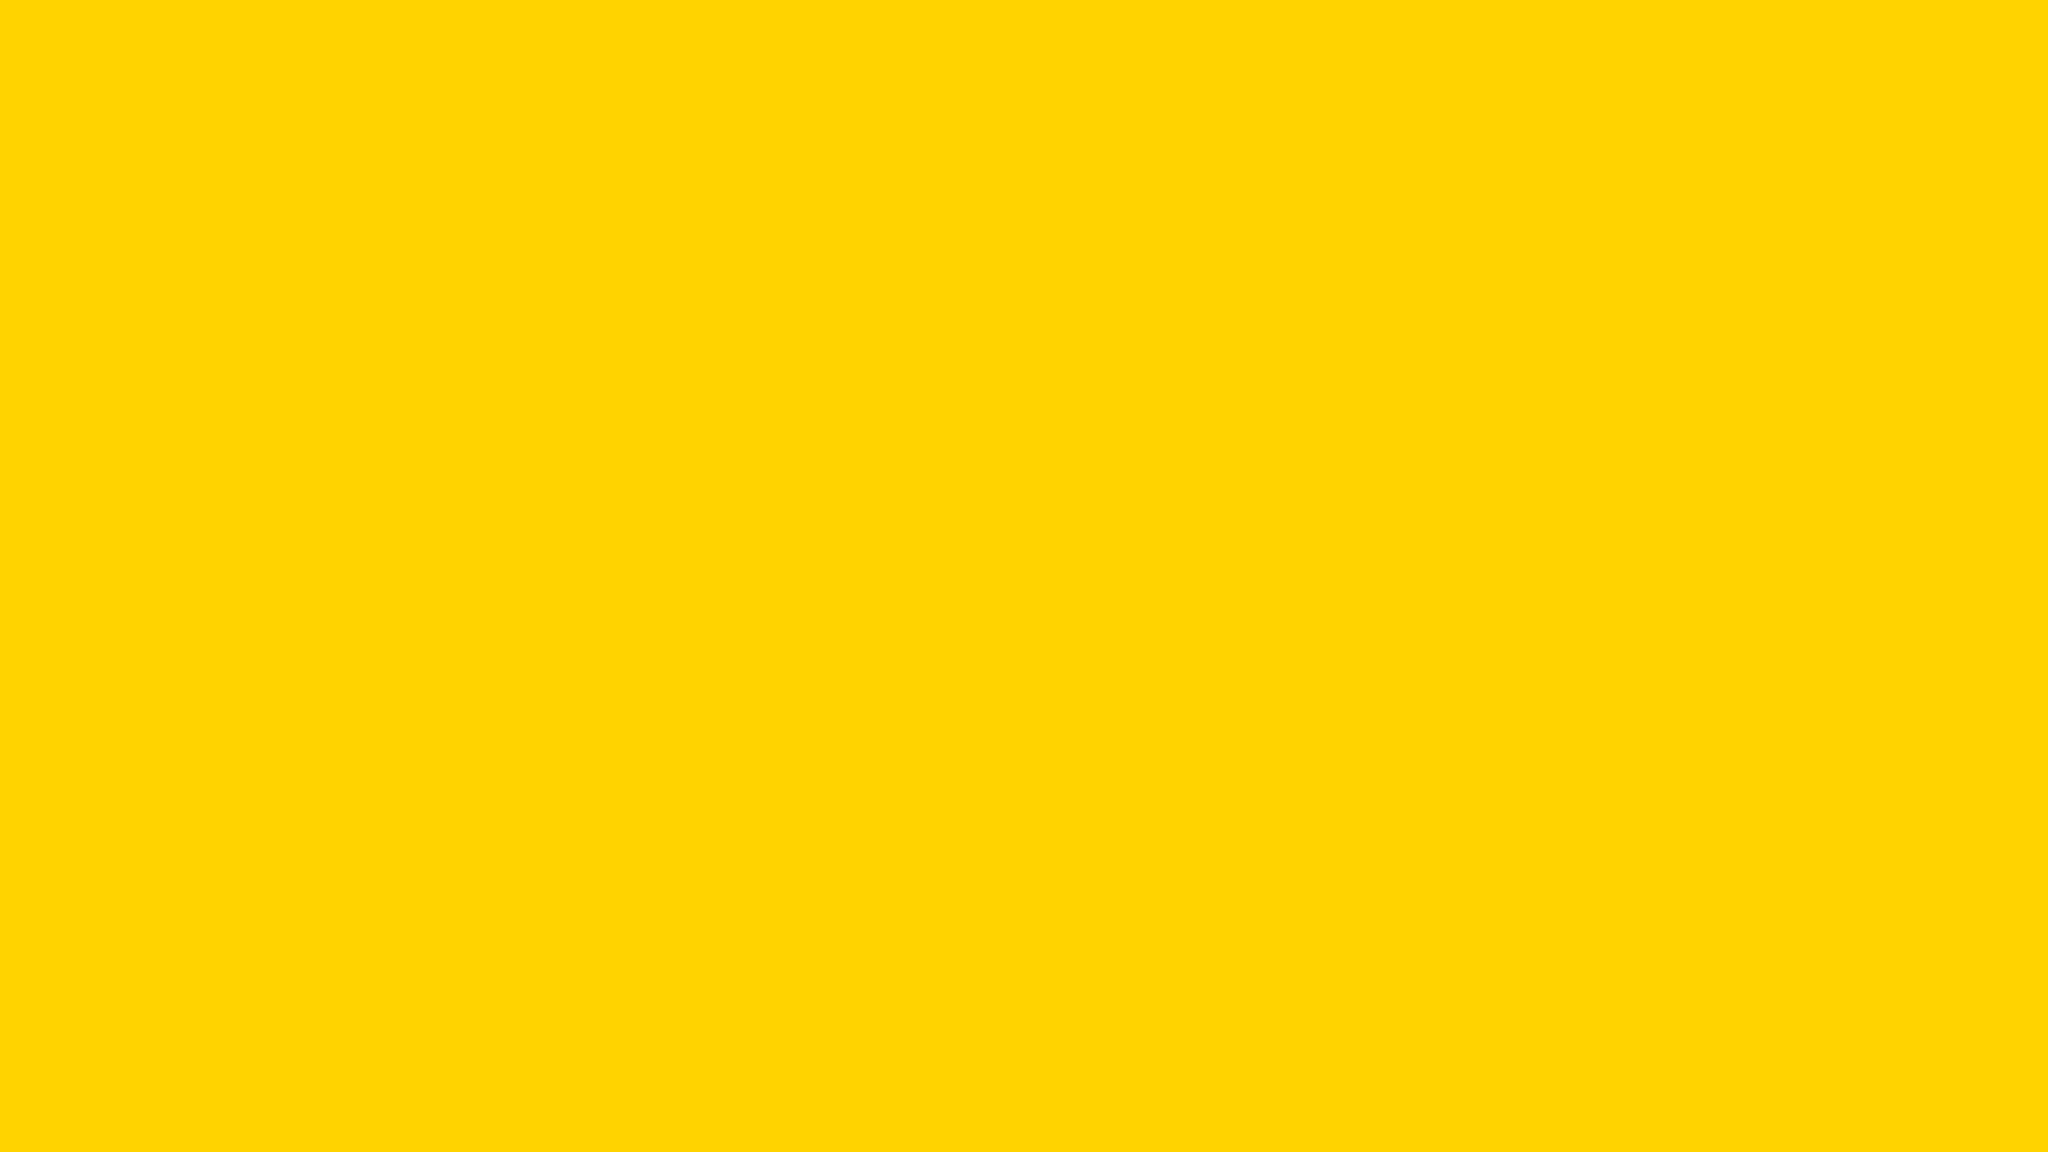 Yellow hd widescreen wallpapers for desktop sharovarka pinterest